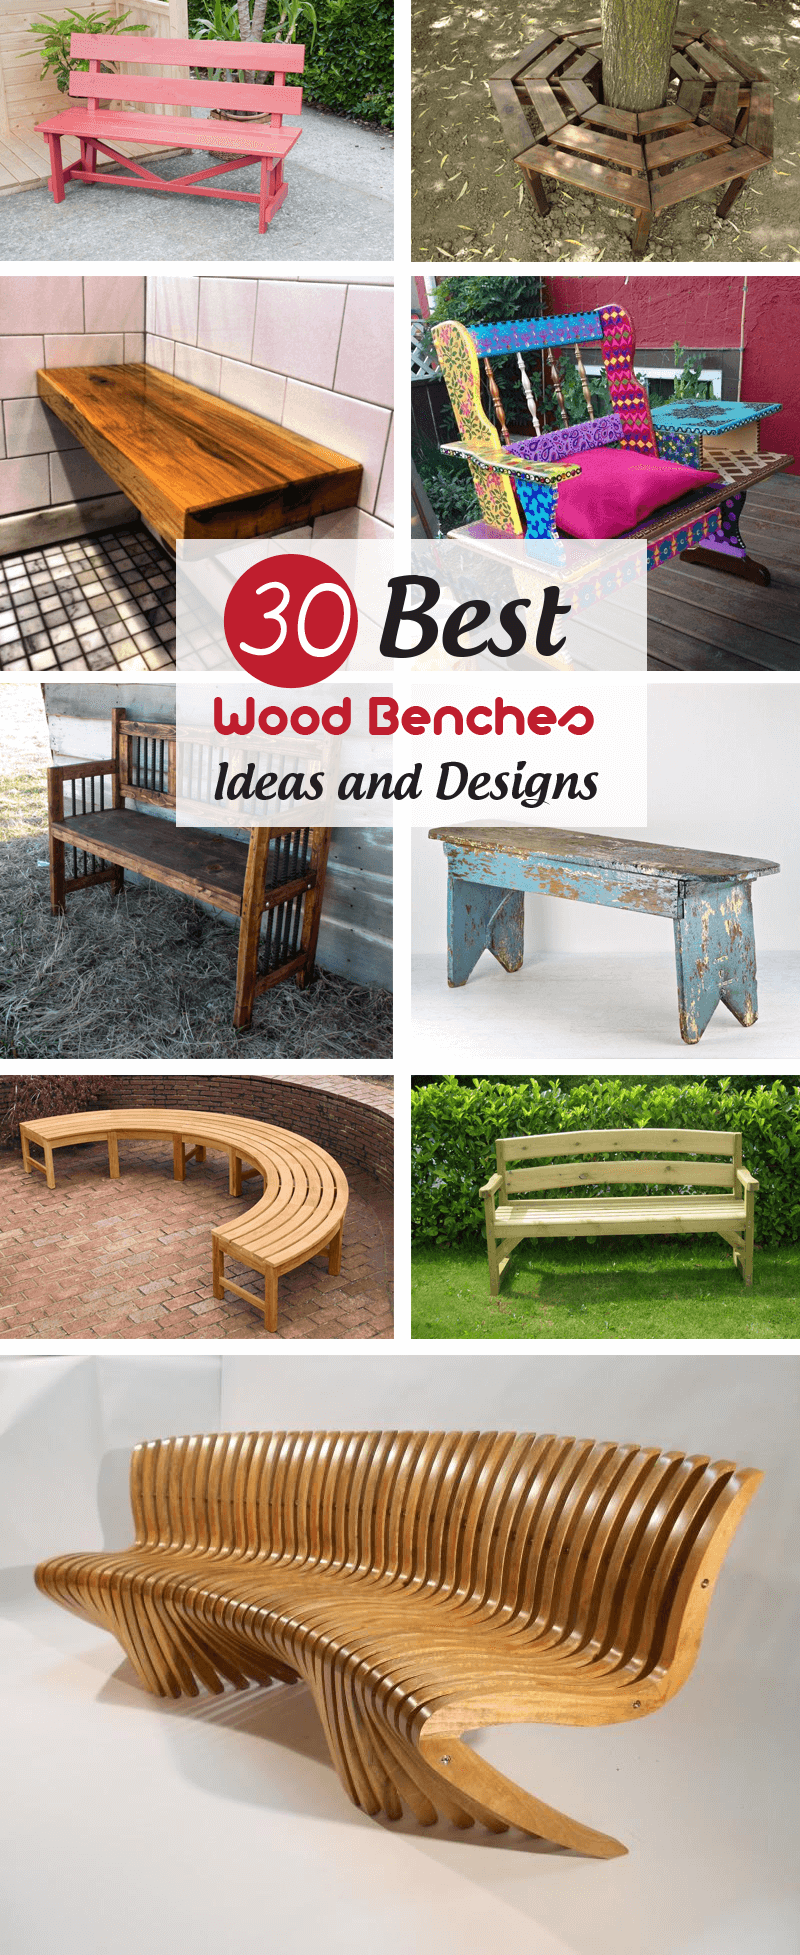 Best Wood Benches Ideas and Designs